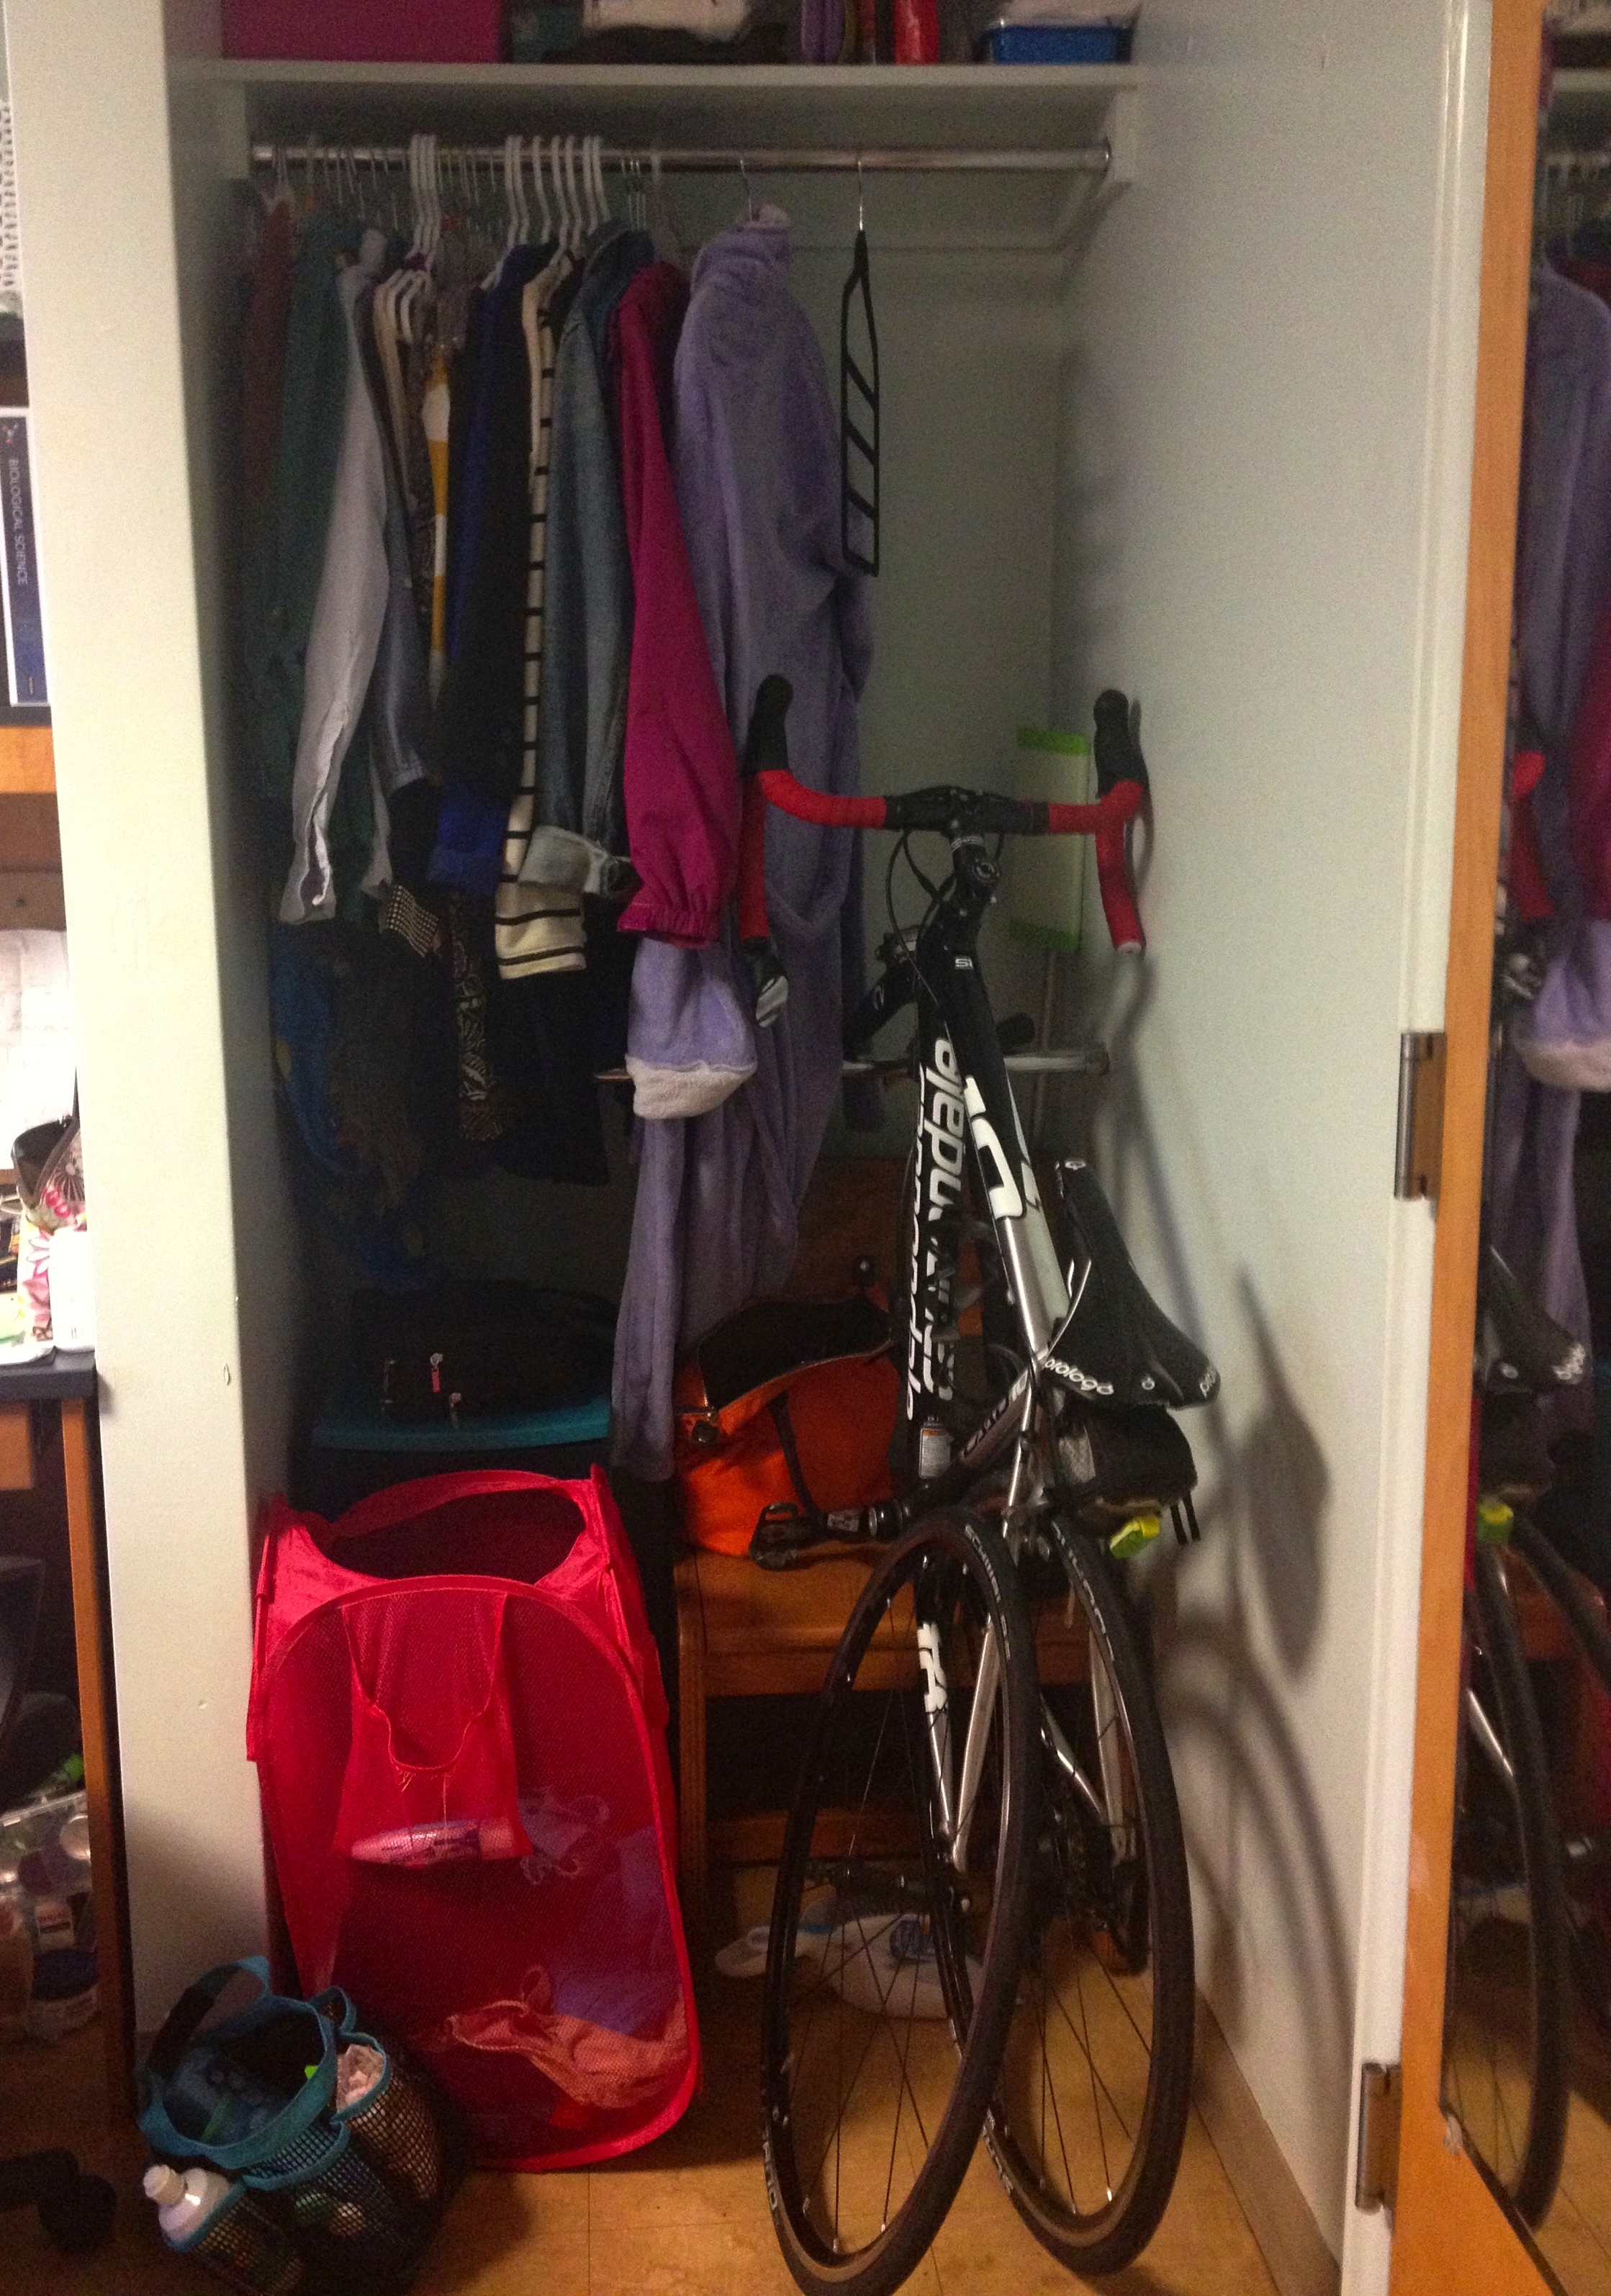 Ariana Put Her Road Bike In Her Closet And Propped The Front On The Bottom  Bar And Took Off The Front Wheel!